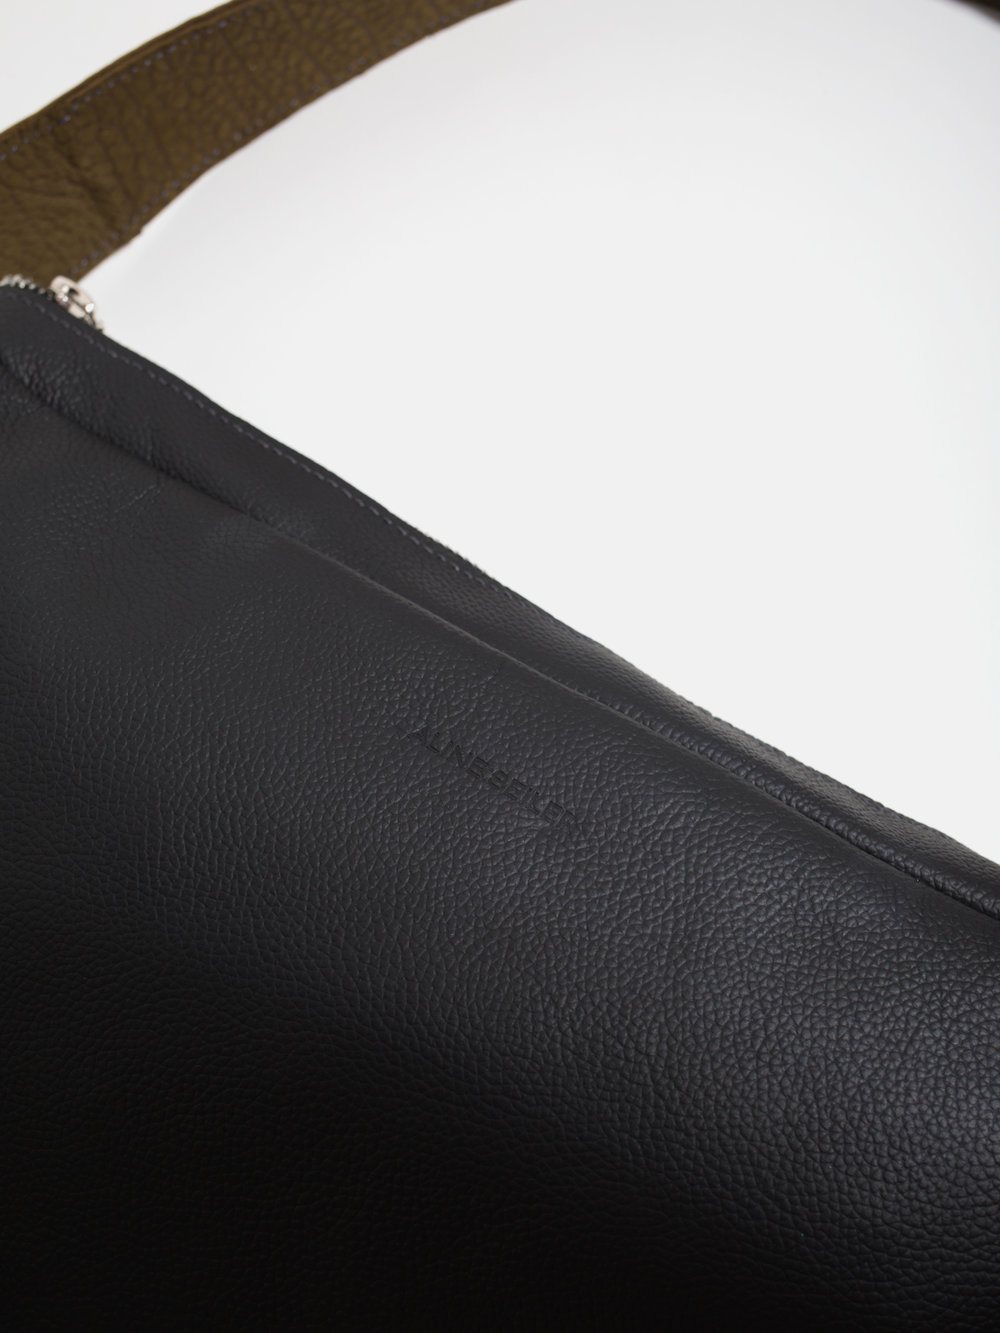 """Detail Shot of the """"M.C Bag"""" by Sonja Klements"""